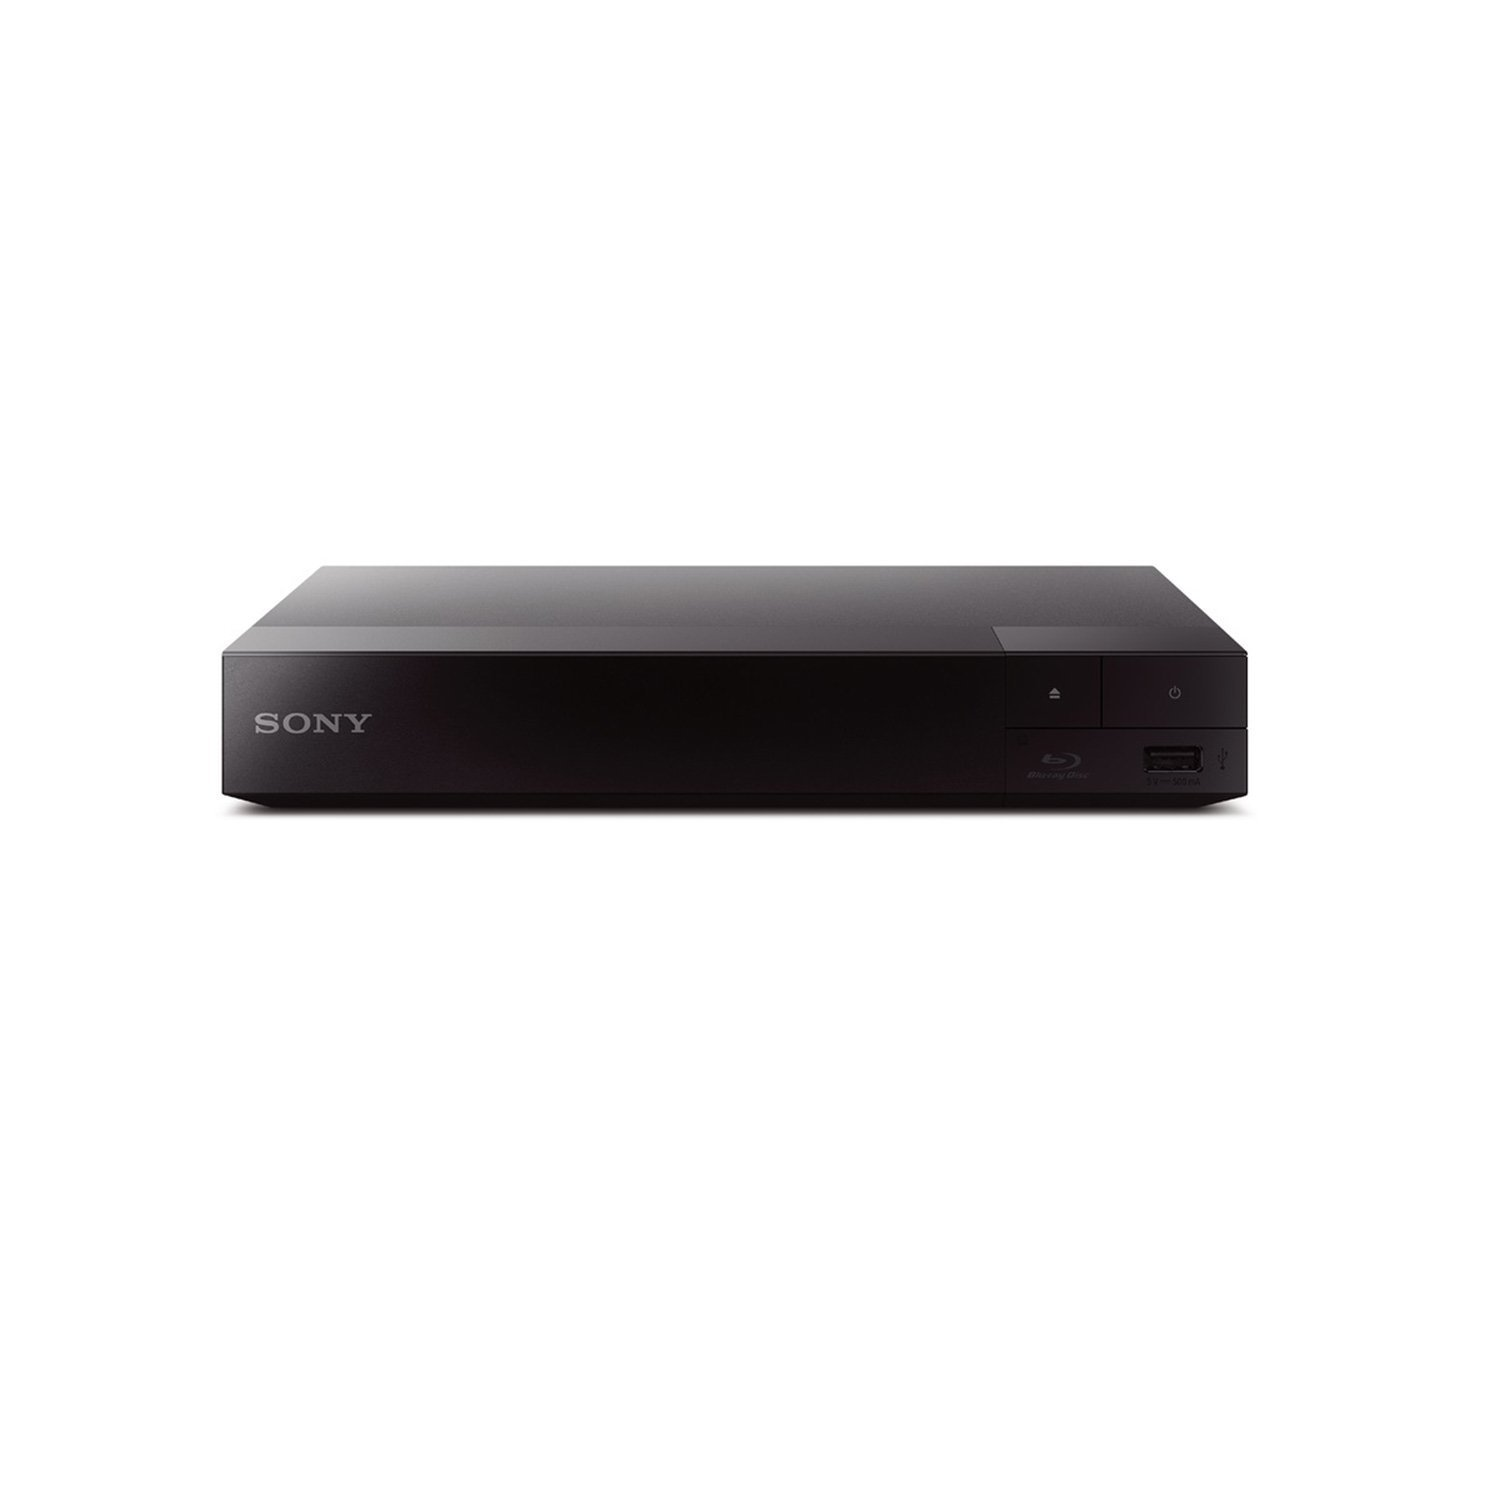 Sony BDPS1700 WIRED Streaming Blu-Ray Disc Player (2016 Model) (Certified Refurbished)